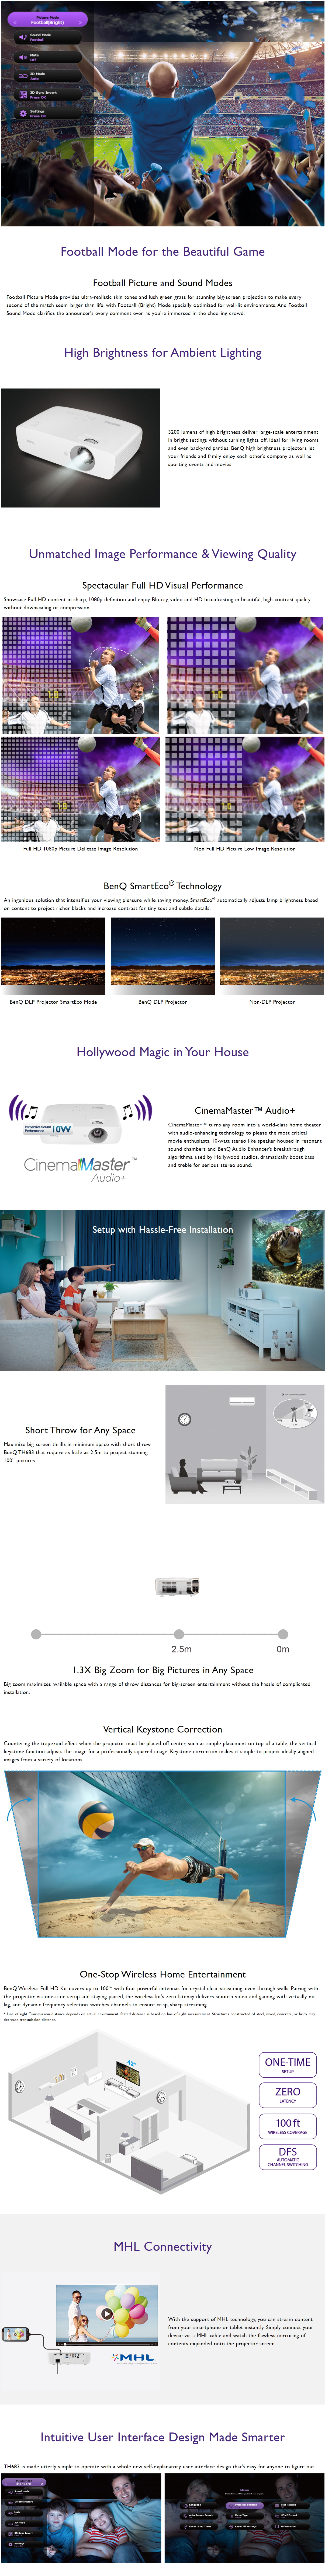 A large marketing image providing additional information about the product BenQ TH683 3200LM Full HD Home Entertainment Projector - Additional alt info not provided